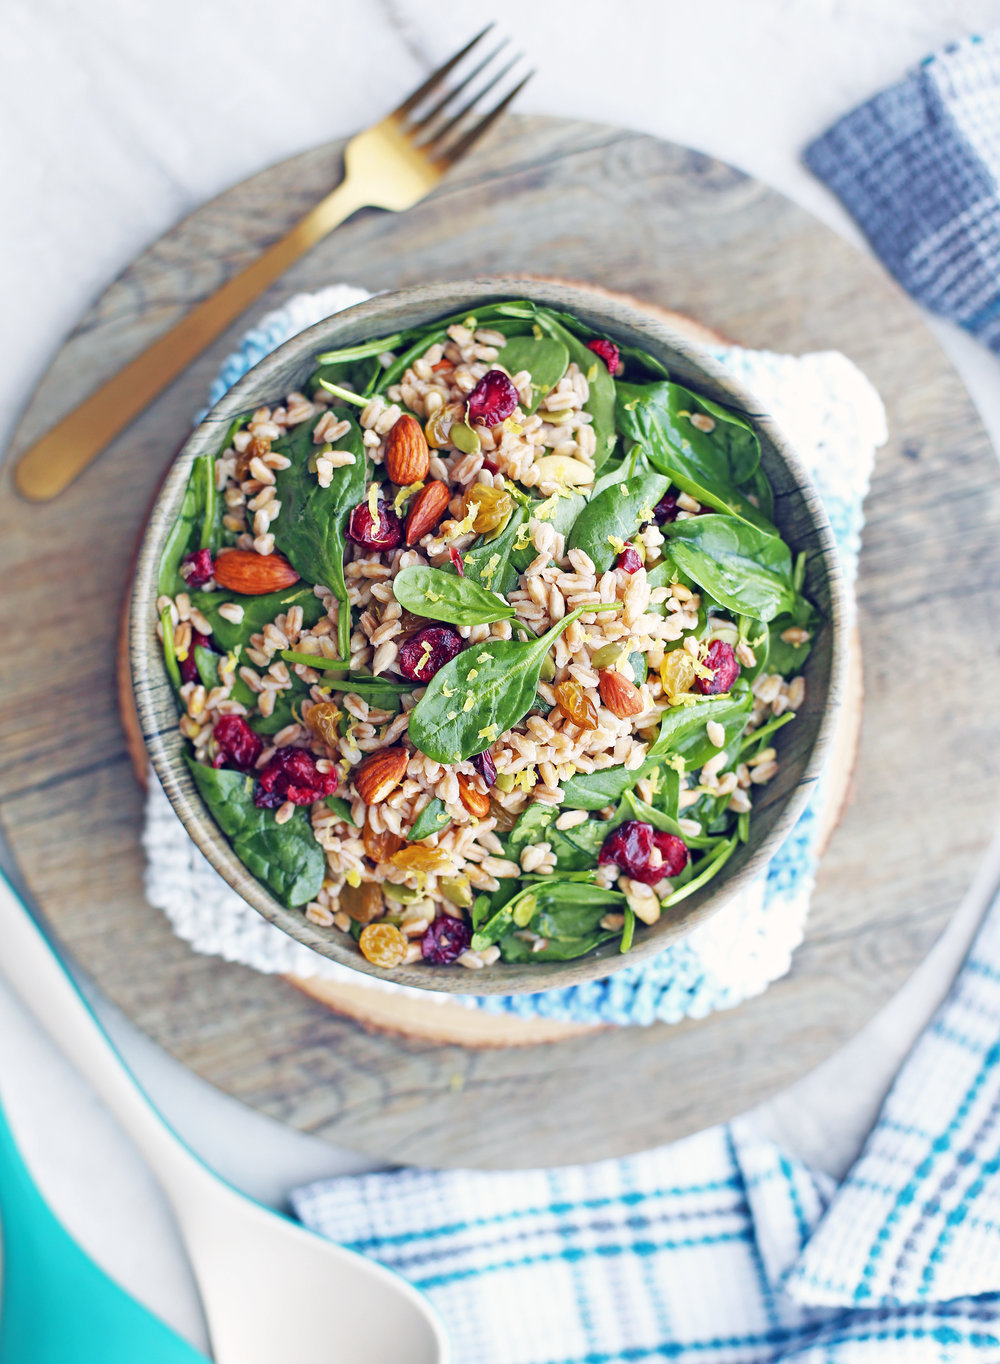 Overhead view of a salad containing farro, baby spinach, dried fruit, nuts, and seeds in a wooden bowl.